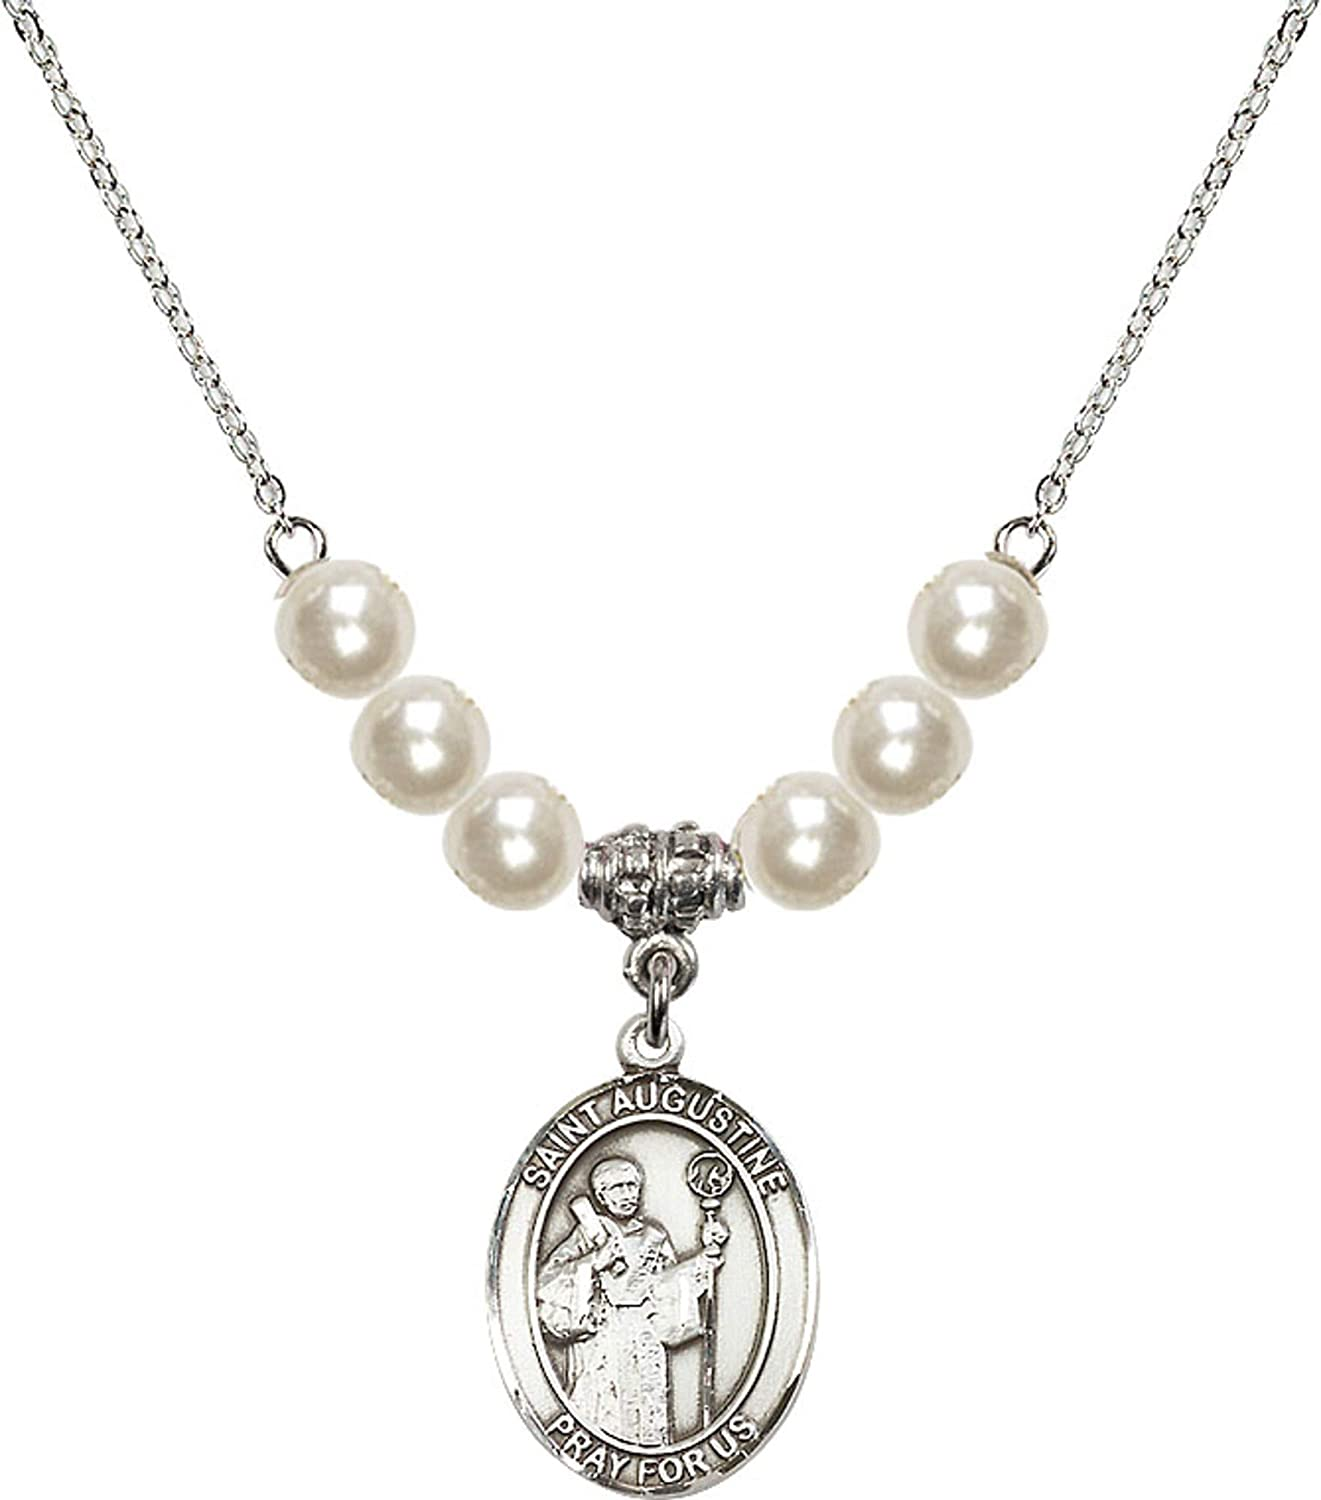 Bonyak Jewelry 18 Inch Rhodium Plated Necklace w// 6mm Faux-Pearl Beads and Saint Augustine Charm